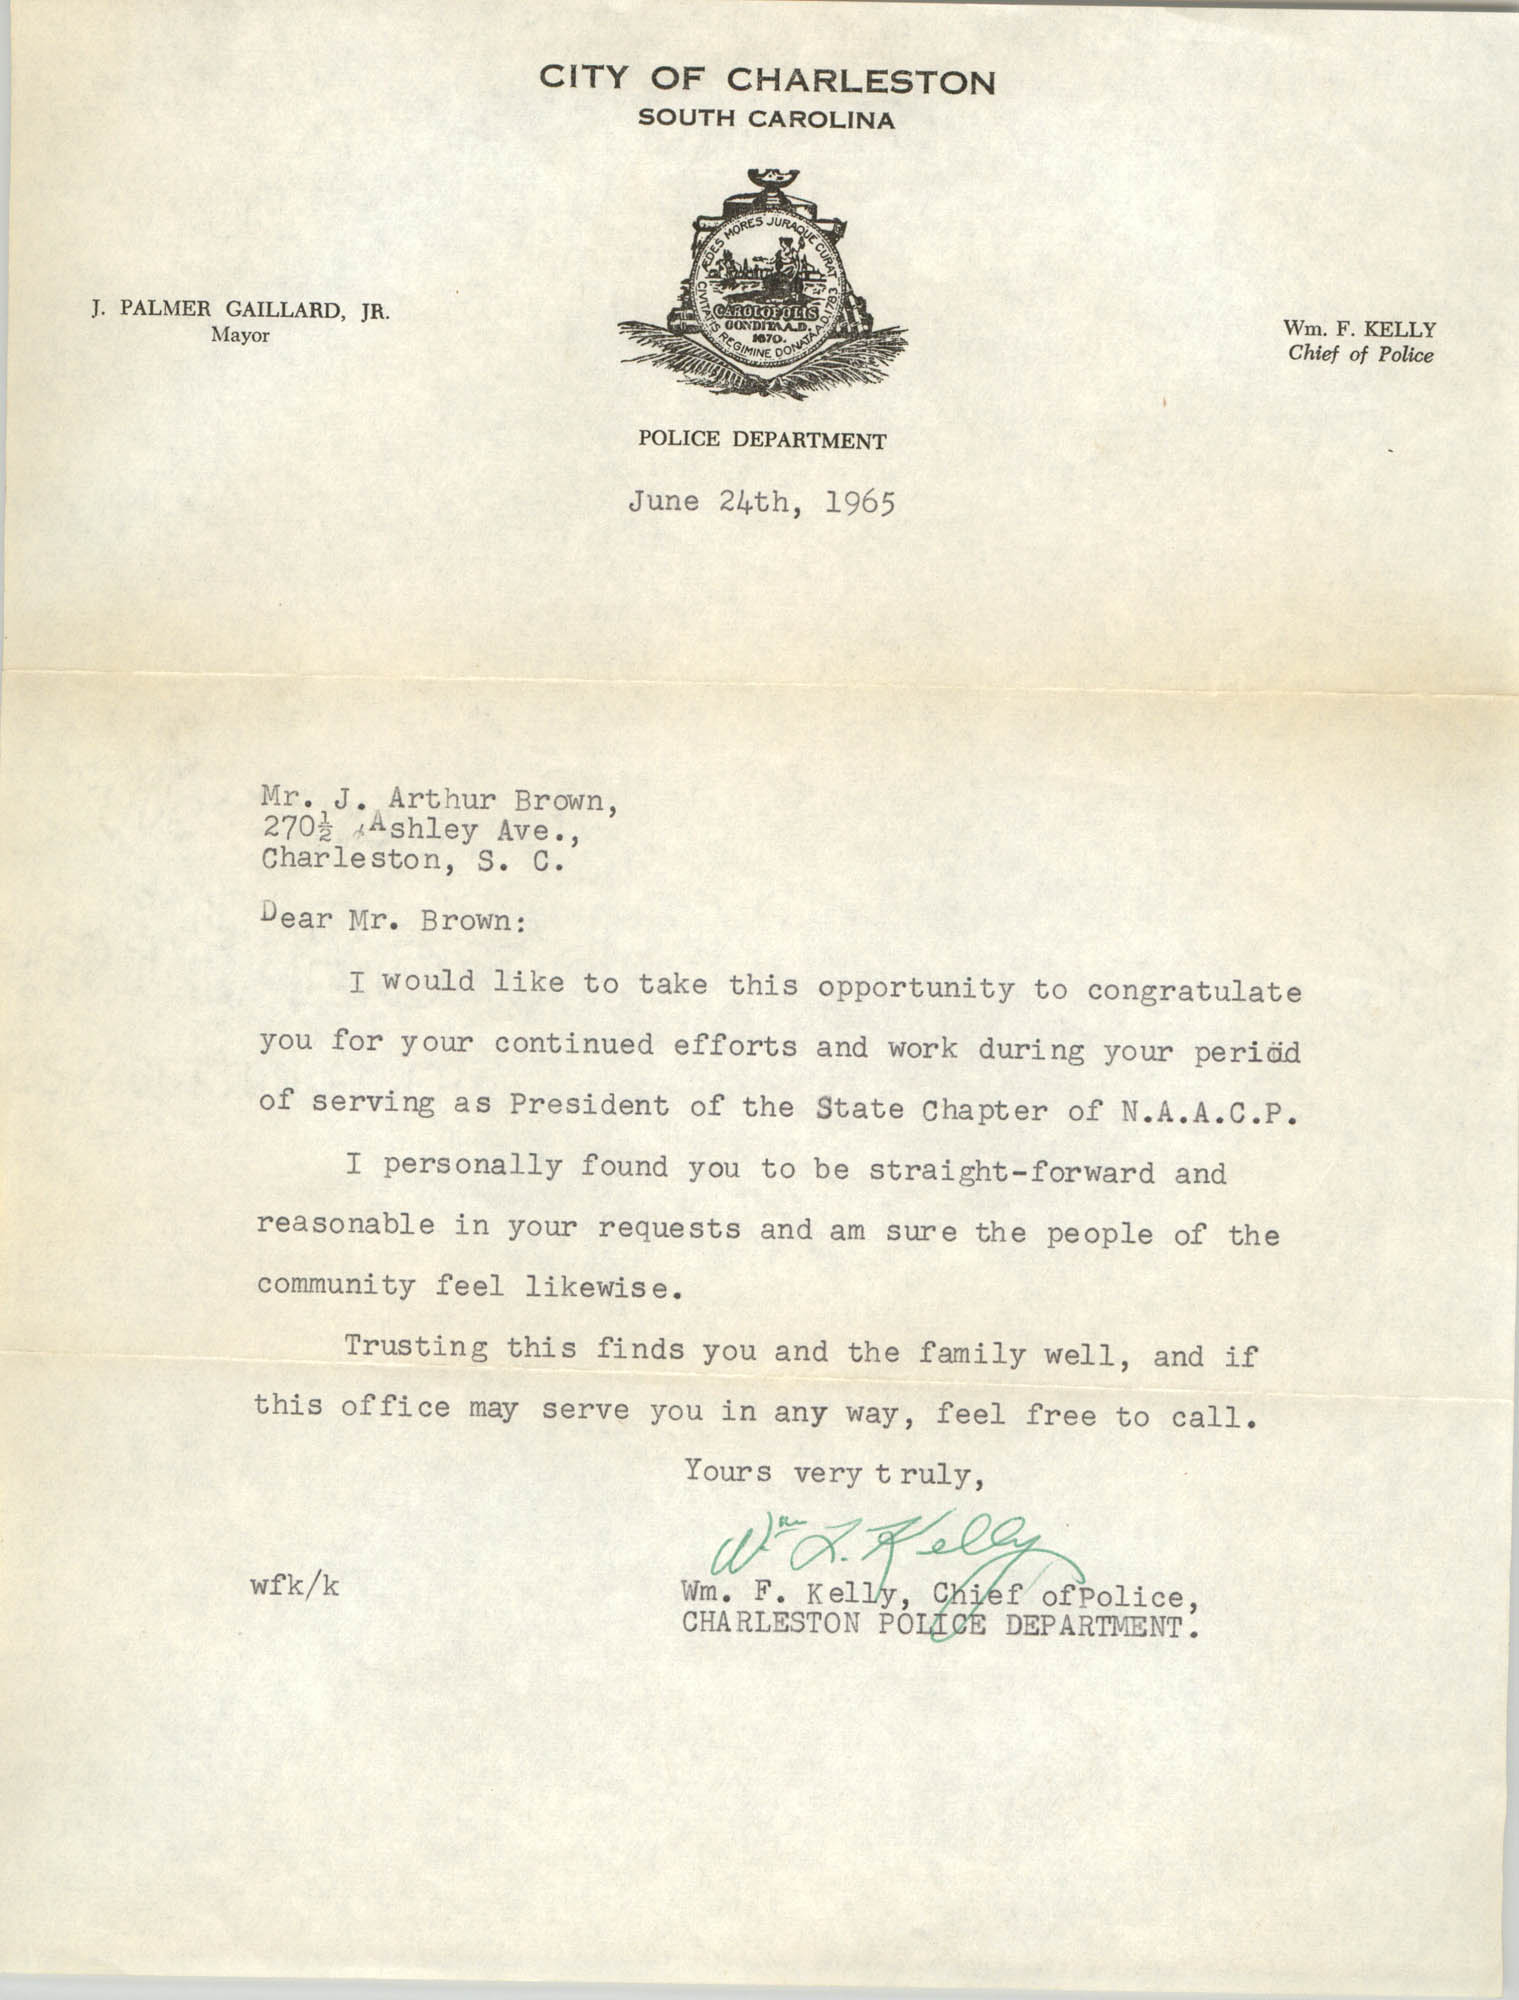 Letter from William F. Kelly to J. Arthur Brown, June 24, 1965